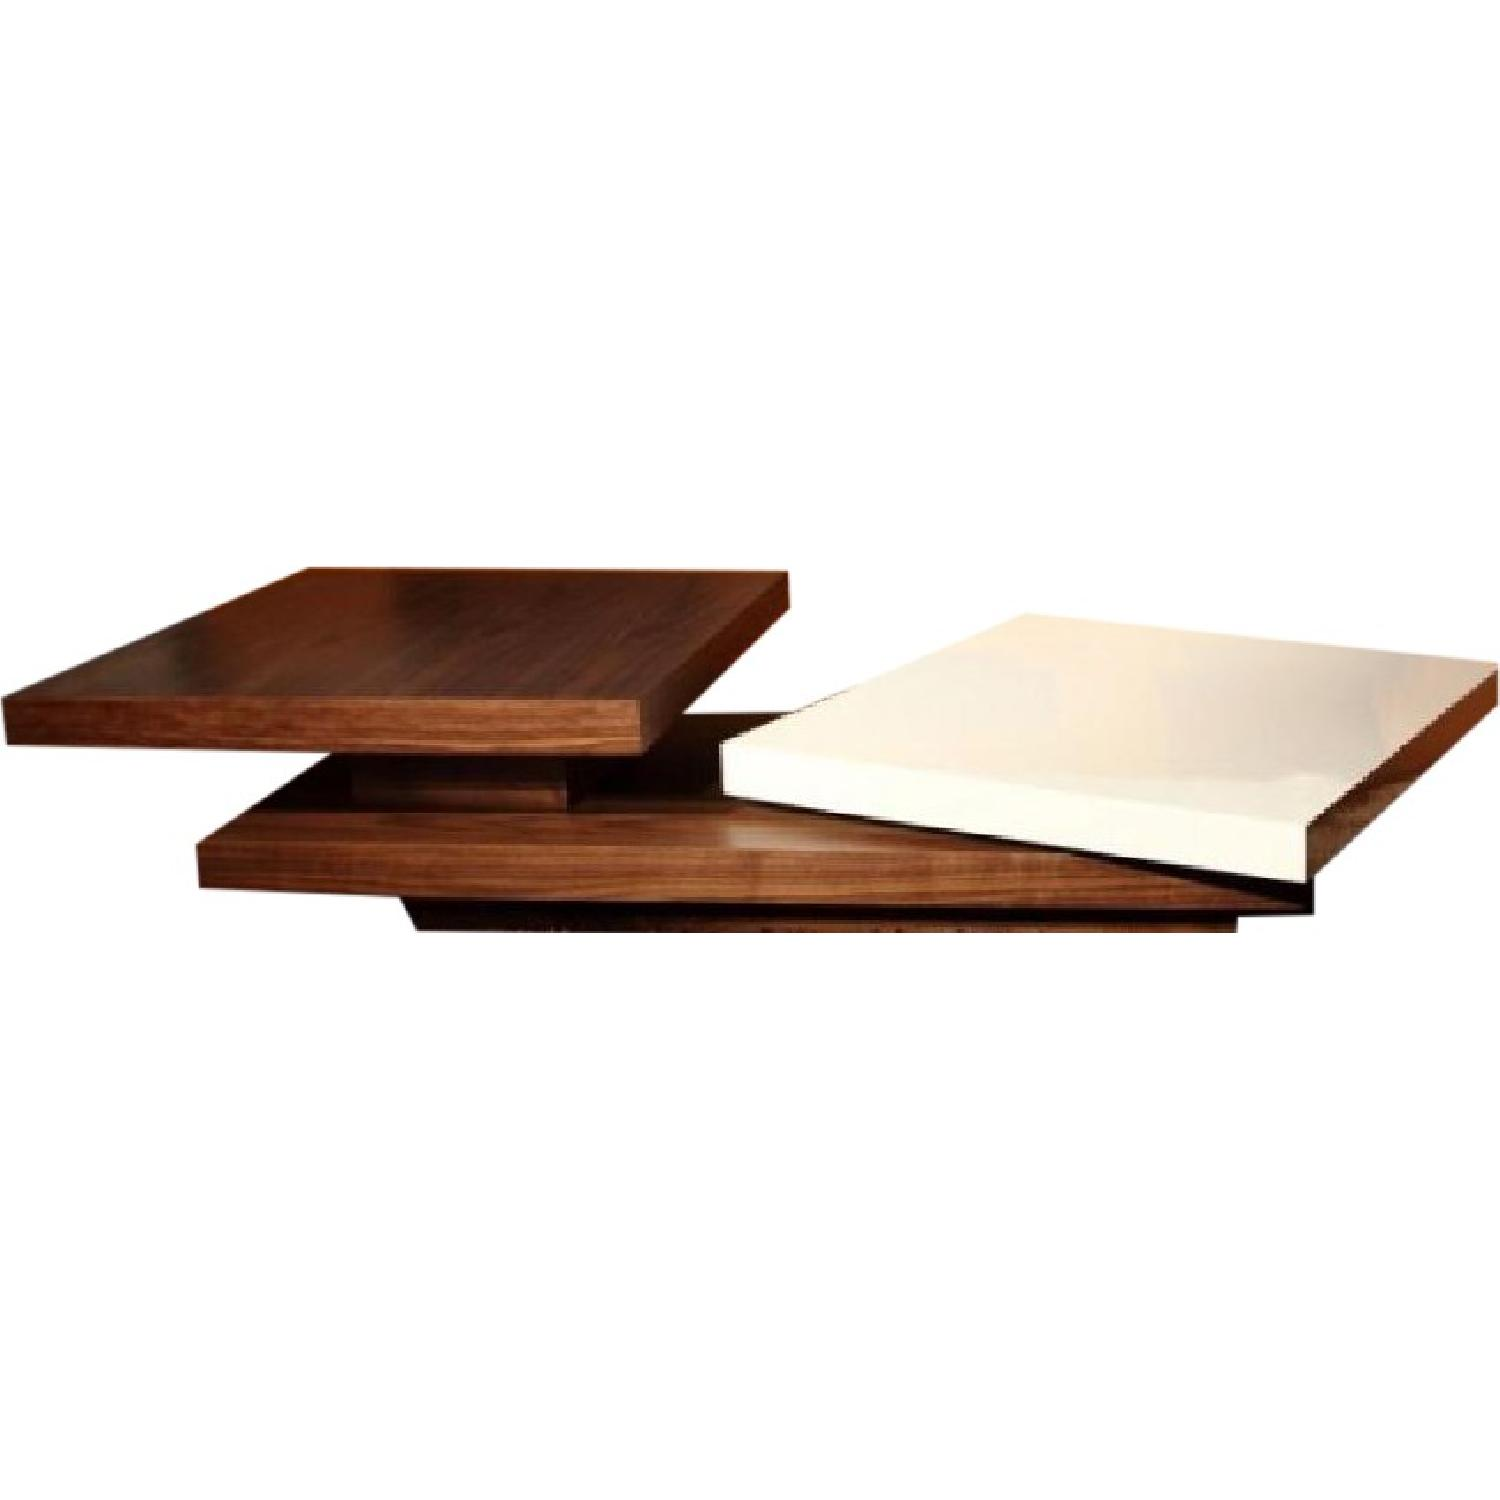 White Walnut Coffee Table: Contemporary Motion Coffee Table In Walnut And White Gloss